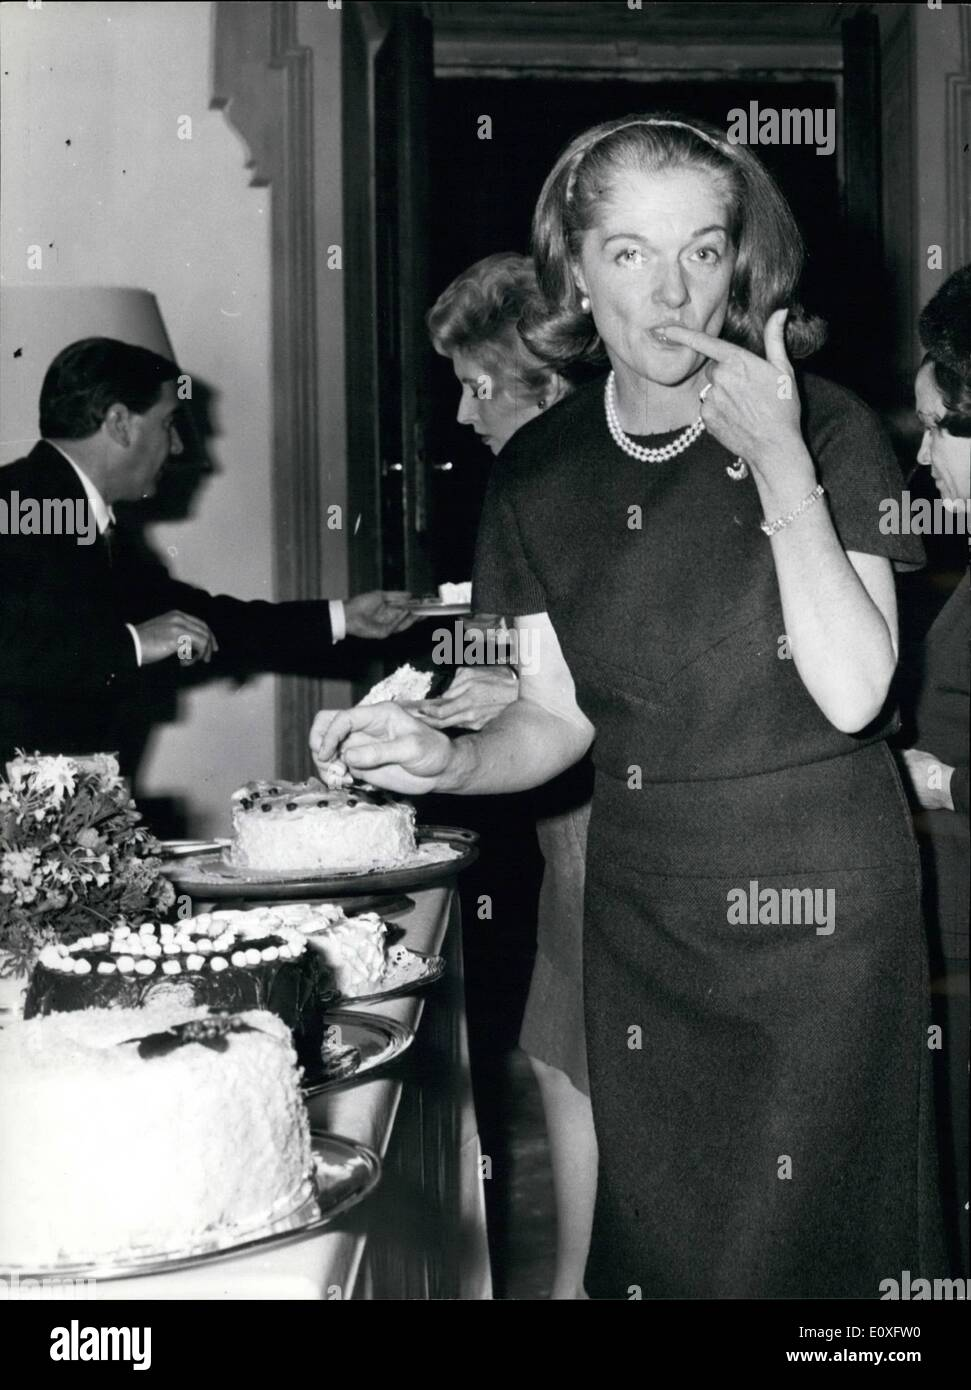 Nov. 11, 1966 - Tarts and Diplomacy: Mrs. Lillian Larke Tootle Reinhardt, wife of the US Ambassador in Rome, demonstrated today - Stock Image